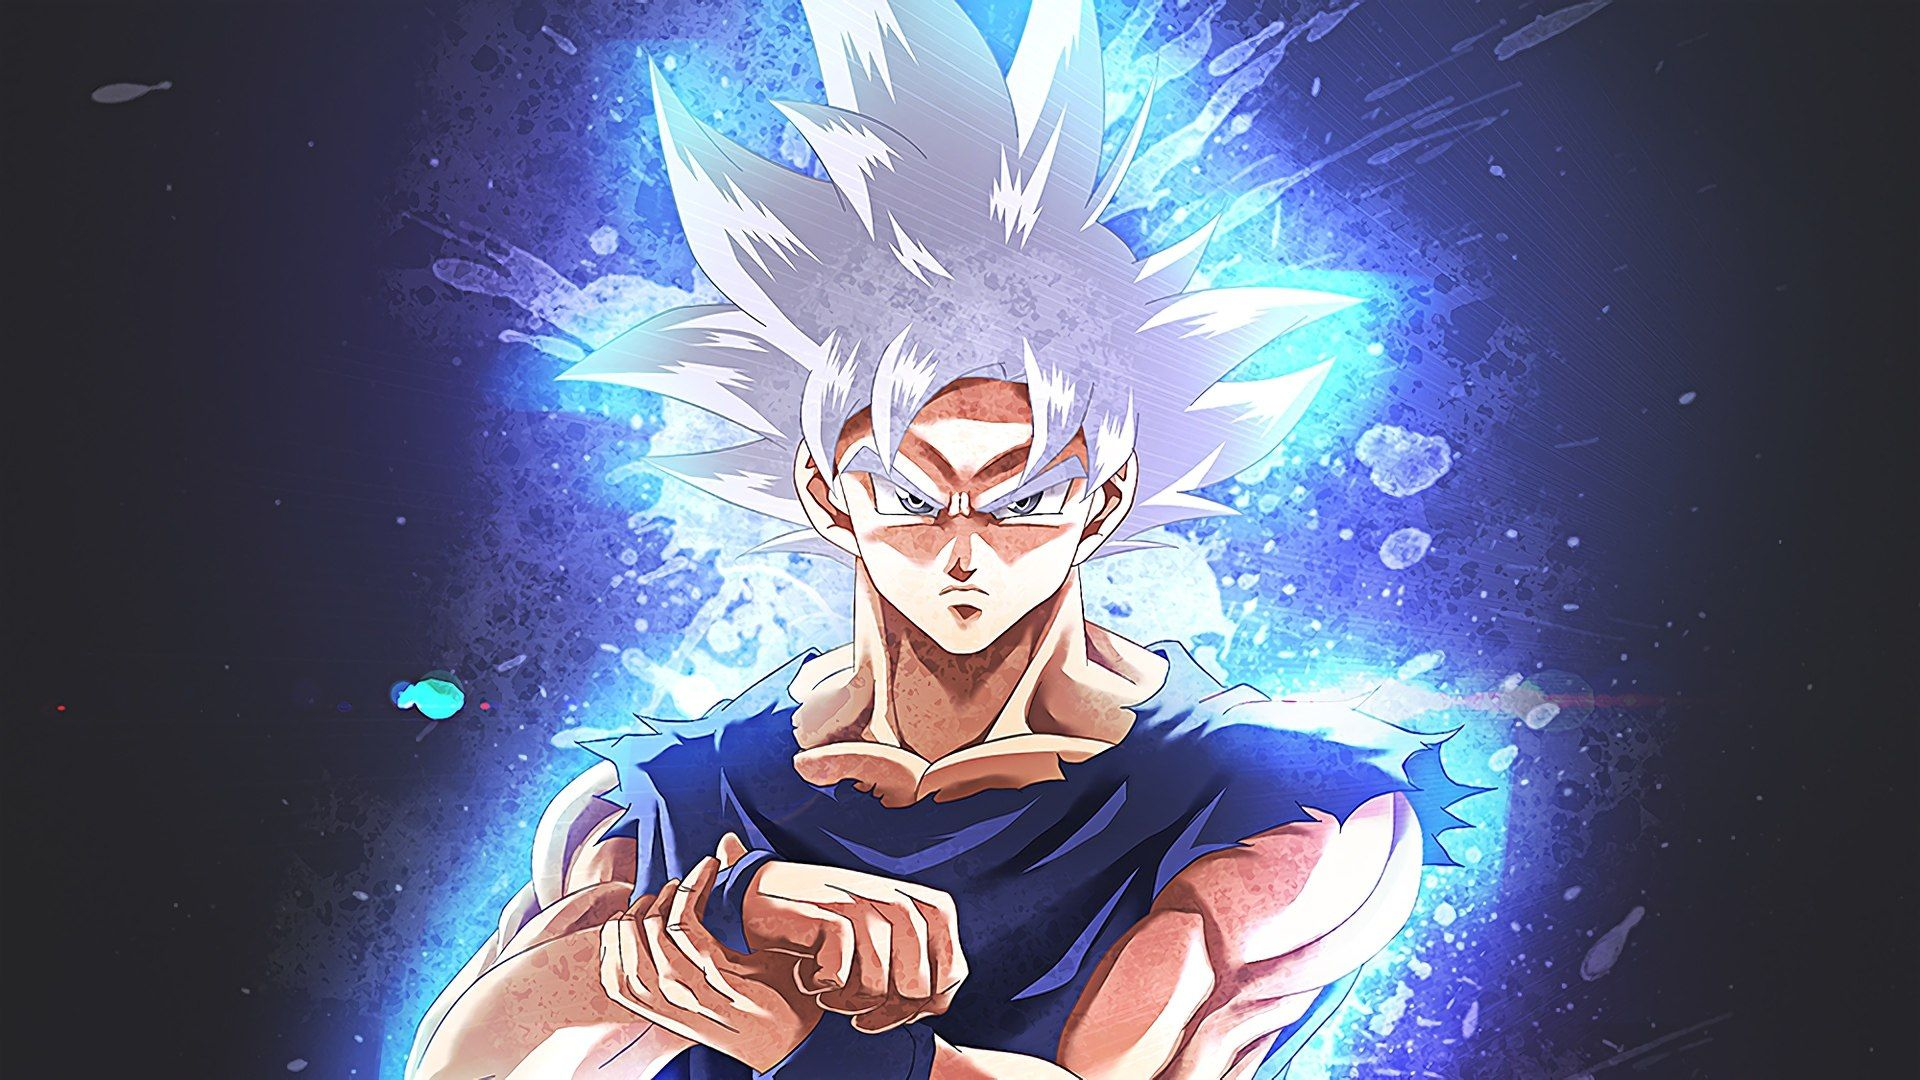 Goku Ultra Instinct Wallpaper Hd: All Goku Forms Ultra Instinct Wallpapers